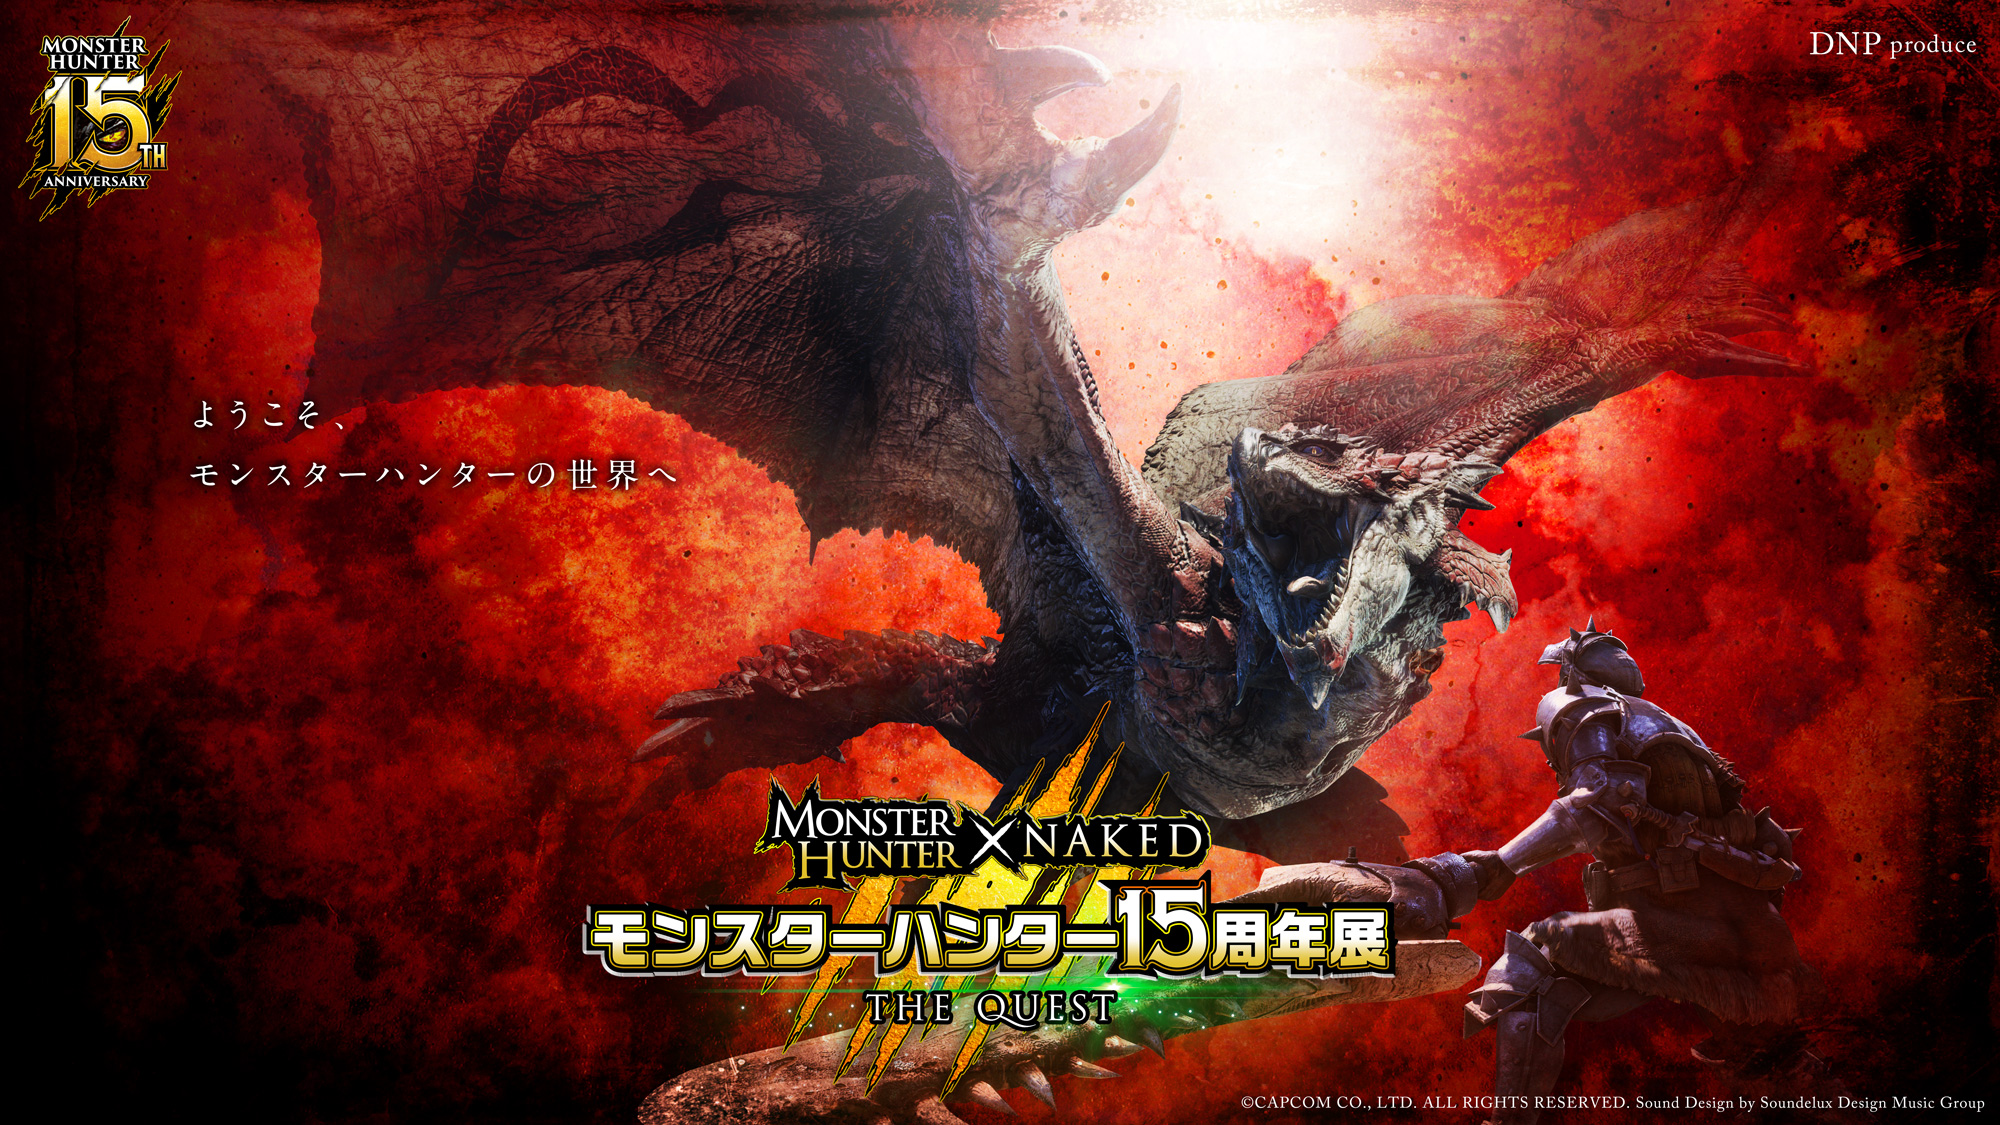 """The second report of the 15th anniversary event of the popular game series """"Monster Hunter"""" is now available!"""